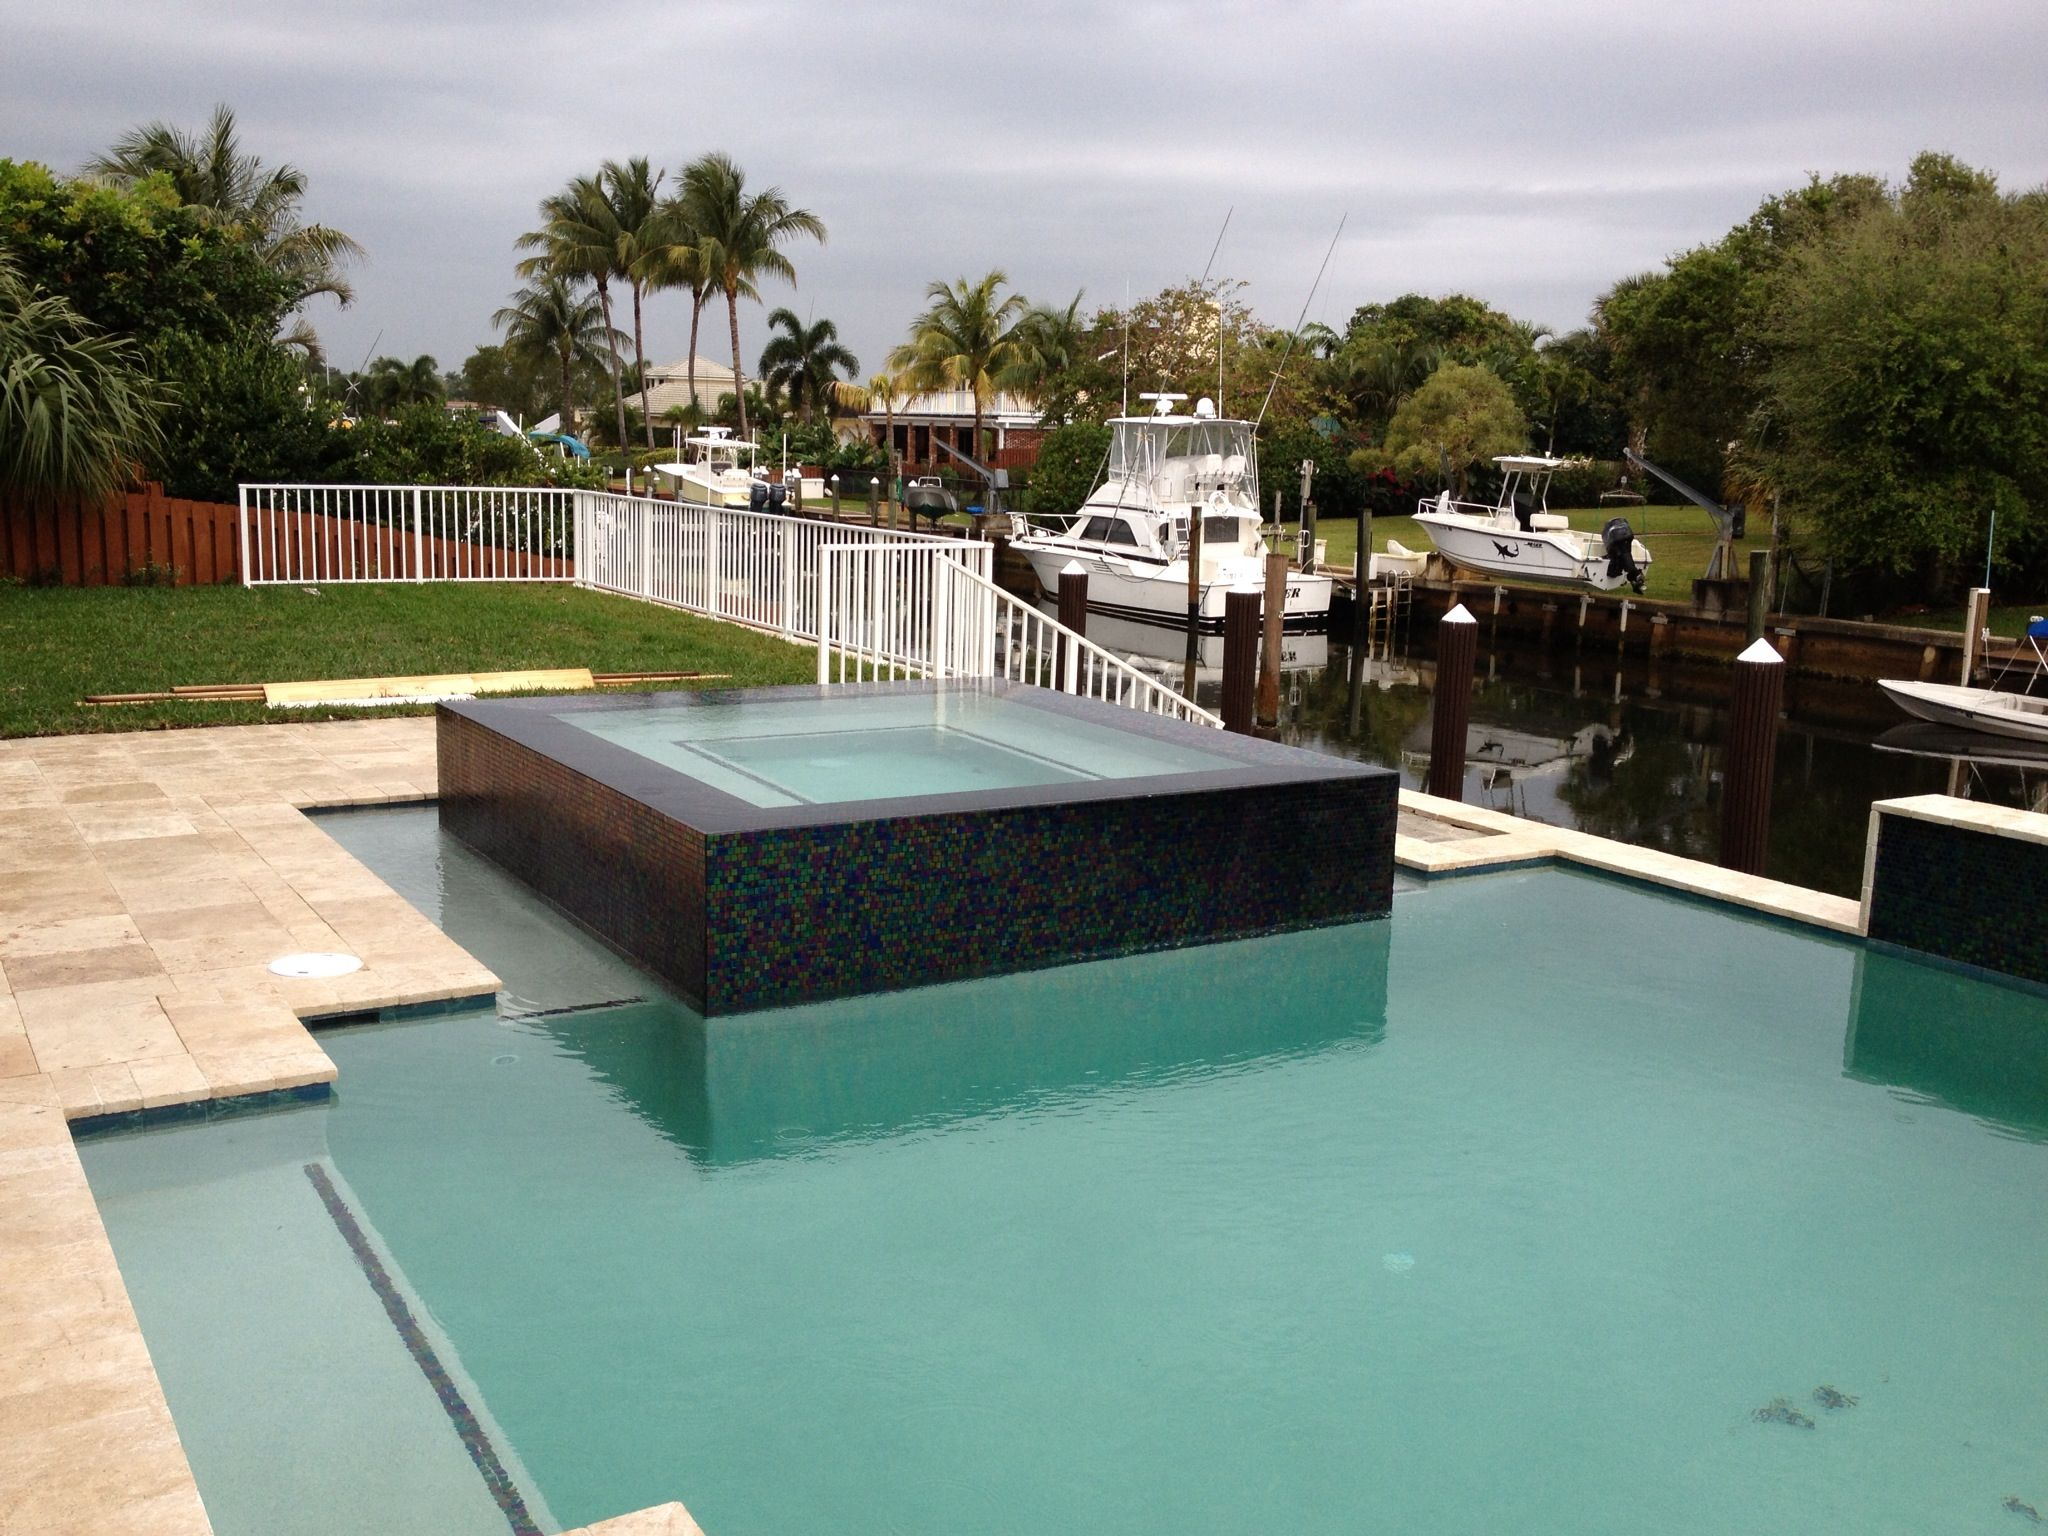 Perimeter overflow spa spas pinterest spa swimming for Overflow pool design